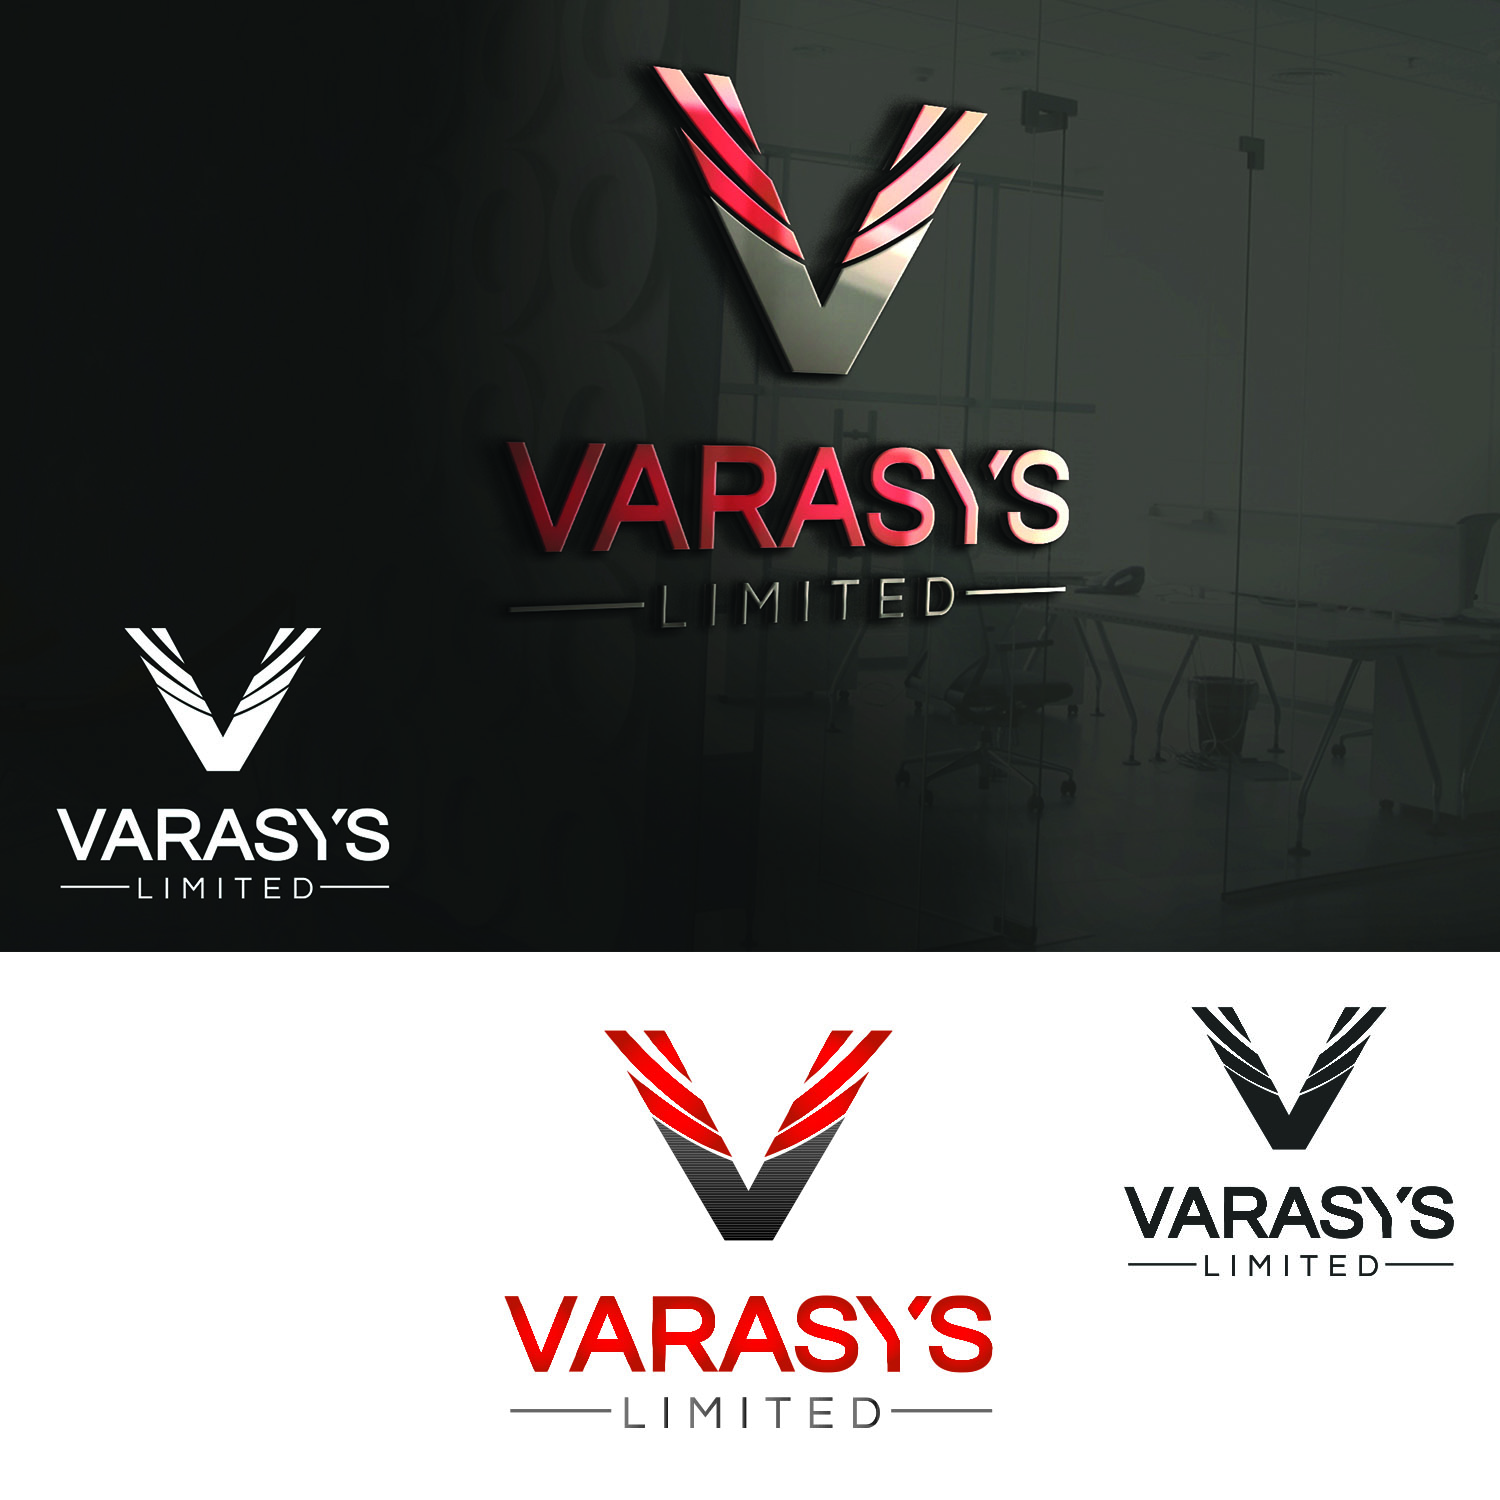 Logo Design by Umair ahmed Iqbal - Entry No. 62 in the Logo Design Contest Artistic Logo Design for VARASYS Limited.